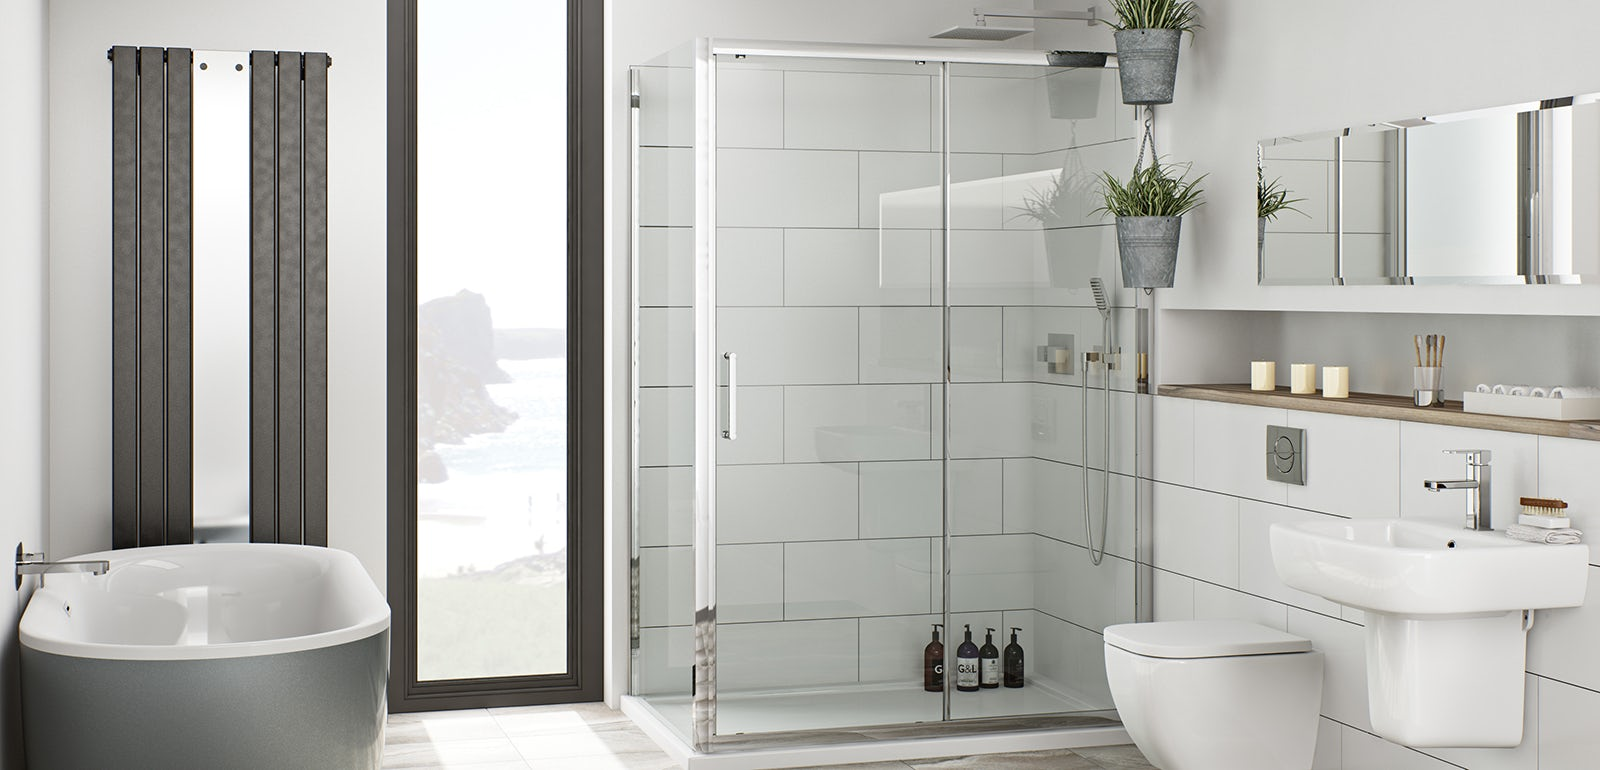 introducing our new bathroom collections | victoriaplum